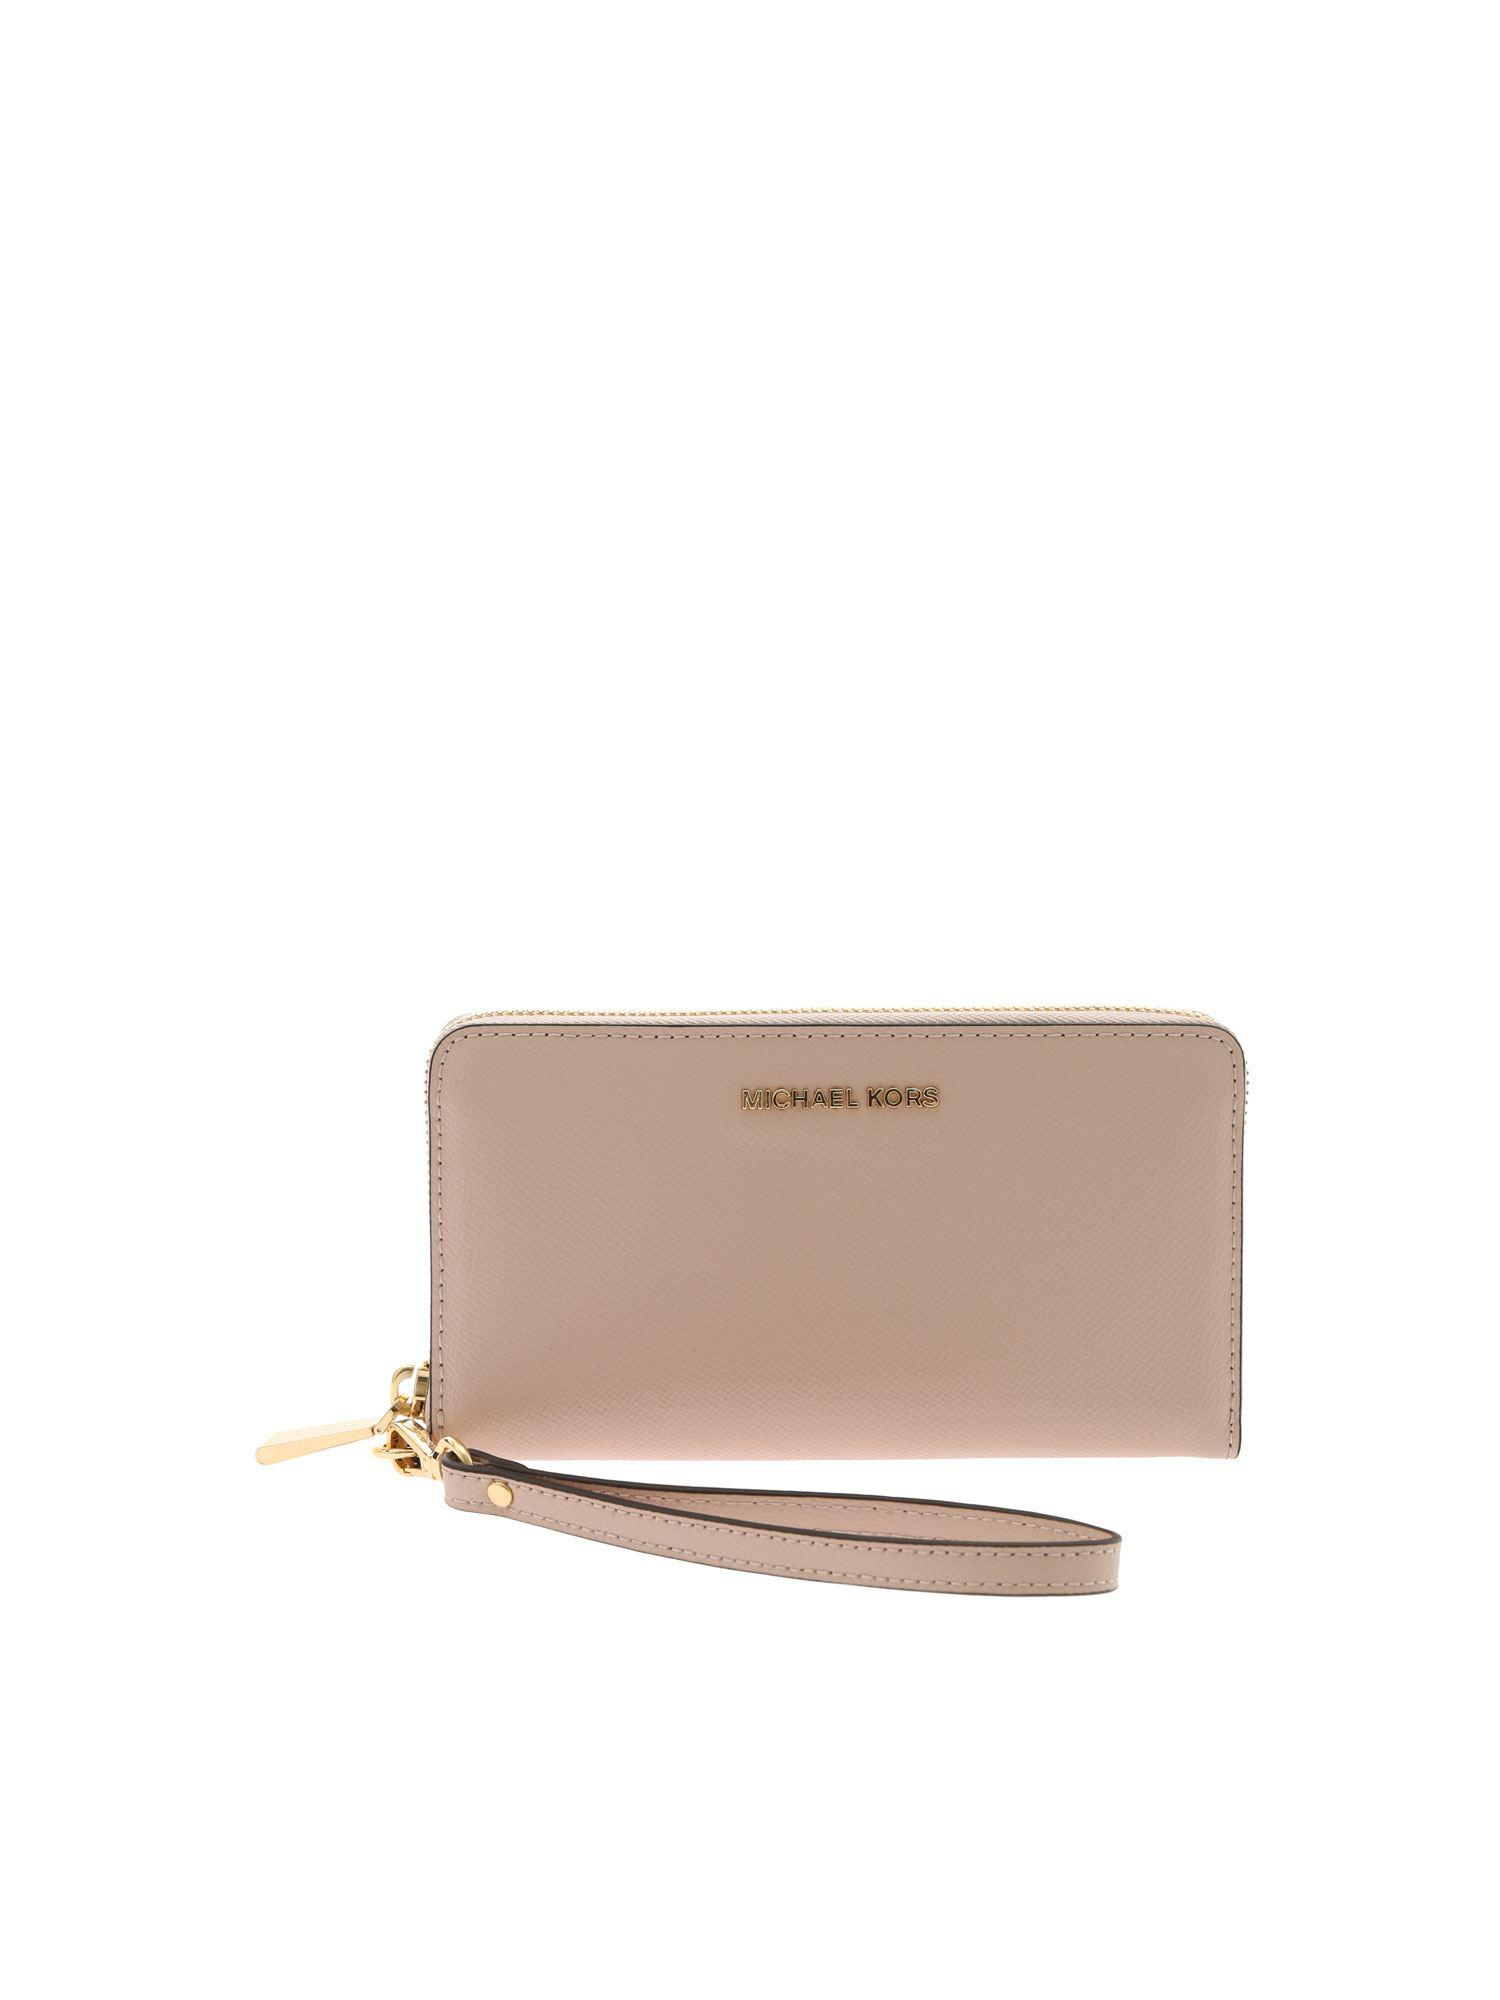 4106854ebbe240 Michael Kors - Multicolor Jet Set Travel Wallet In Pink Leather - Lyst.  View fullscreen